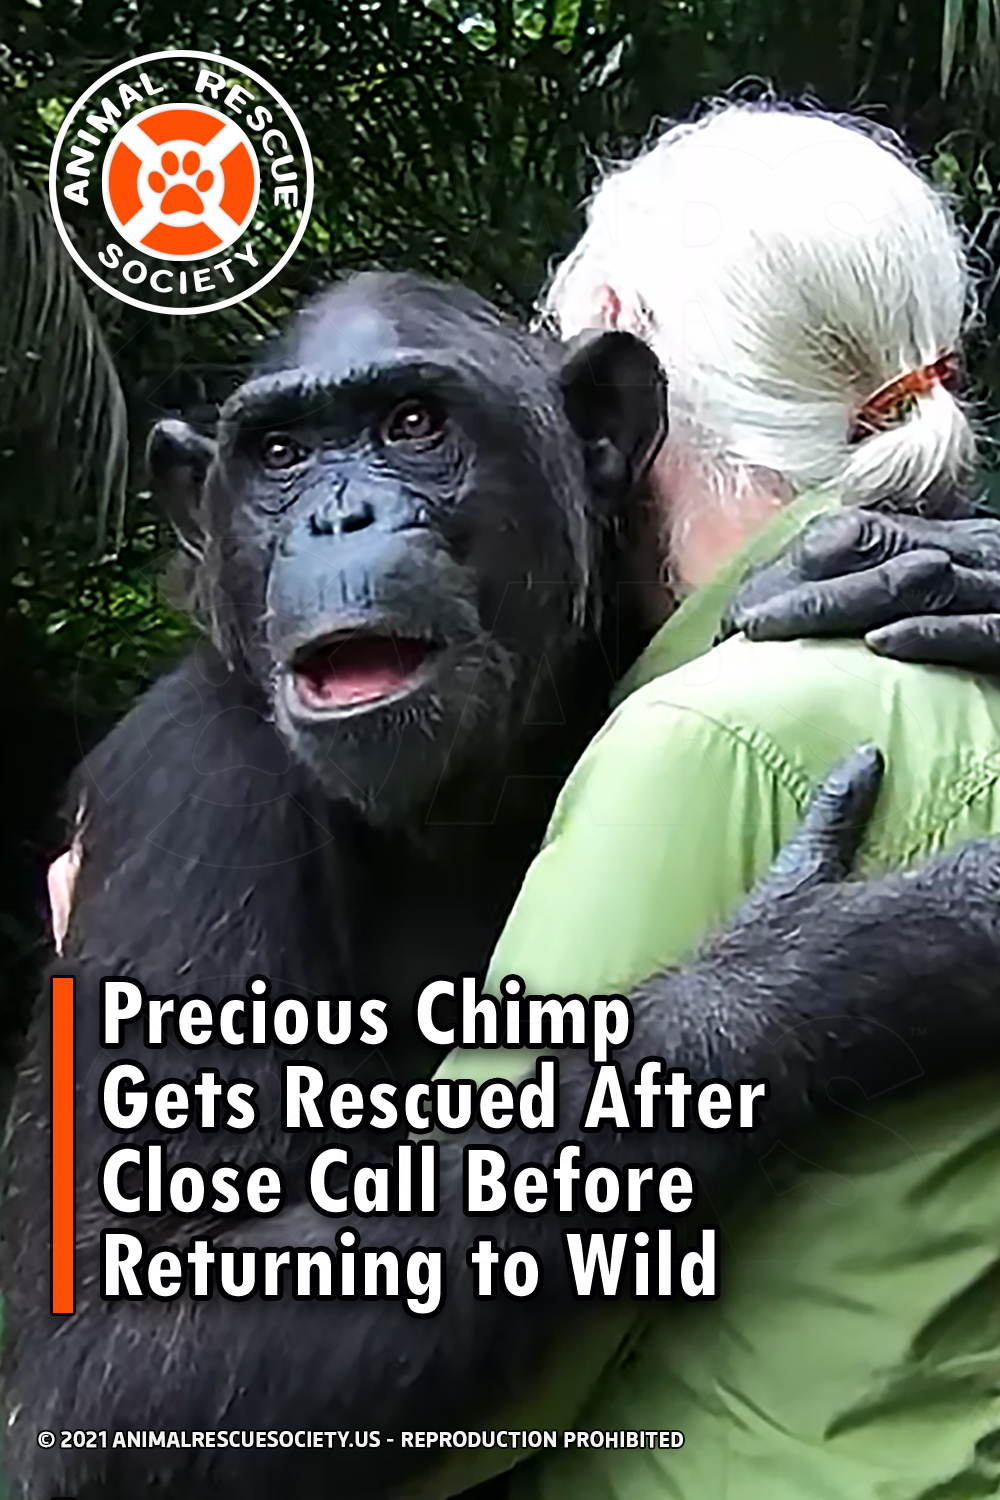 Precious Chimp Gets Rescued After Close Call Before Returning to Wild